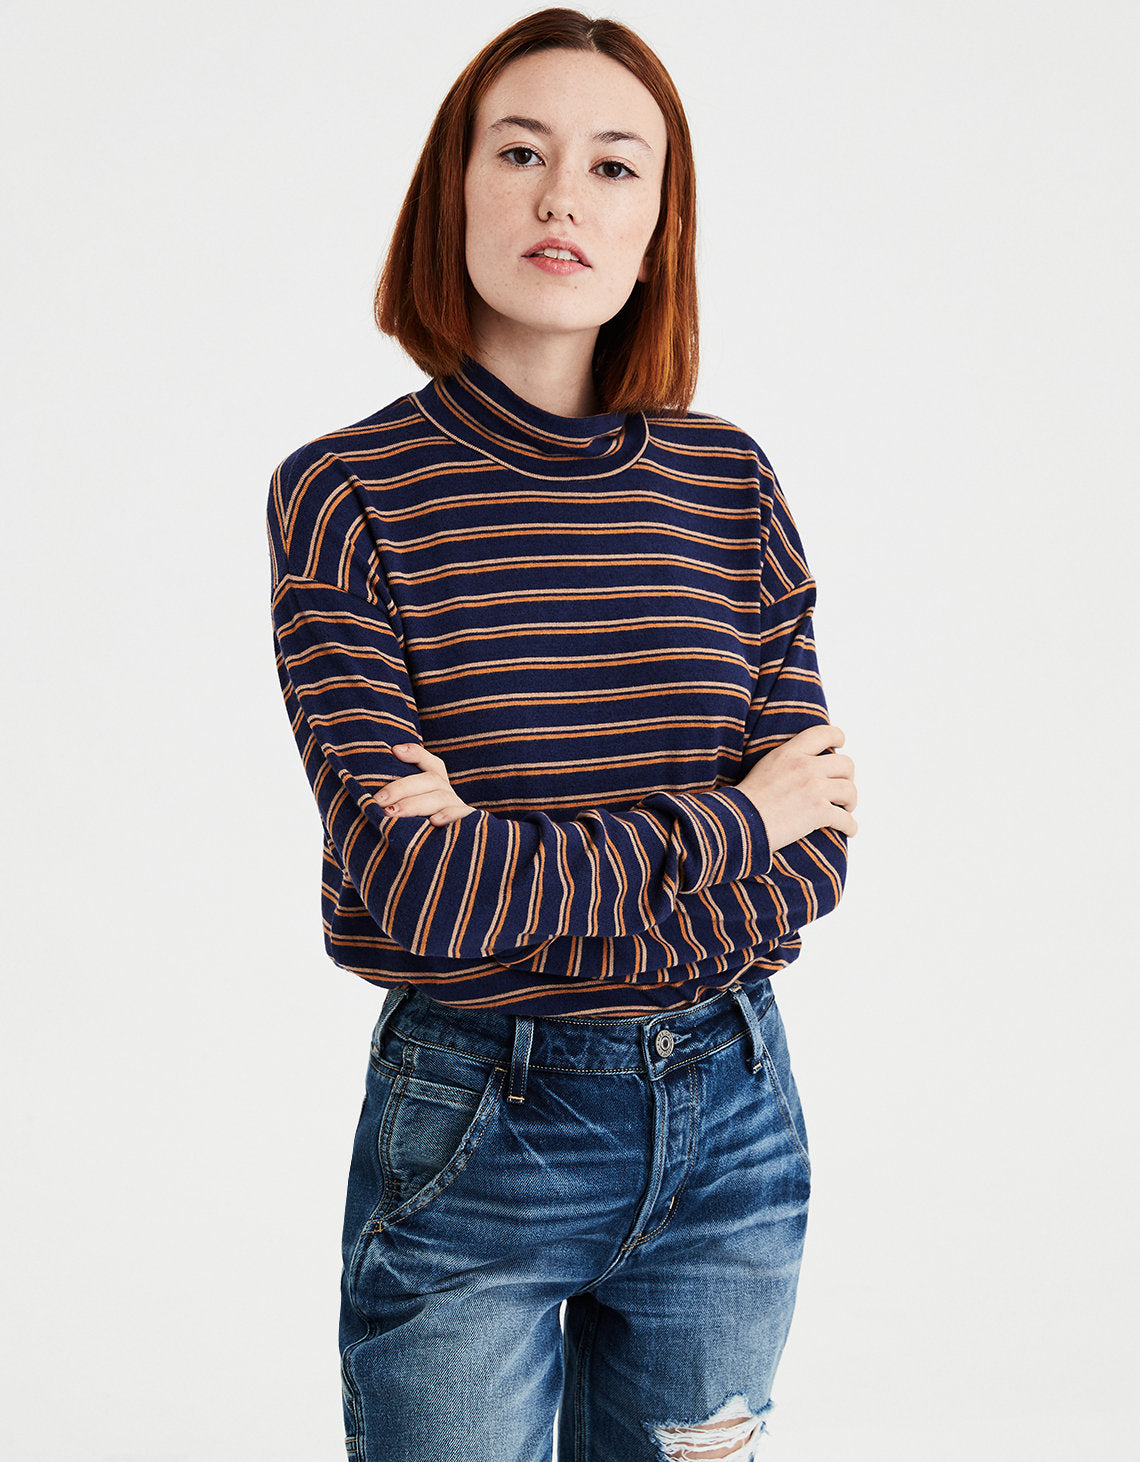 63f154ddc7 American Eagle | AE Plush Striped Mock Neck Top in Navy | American ...